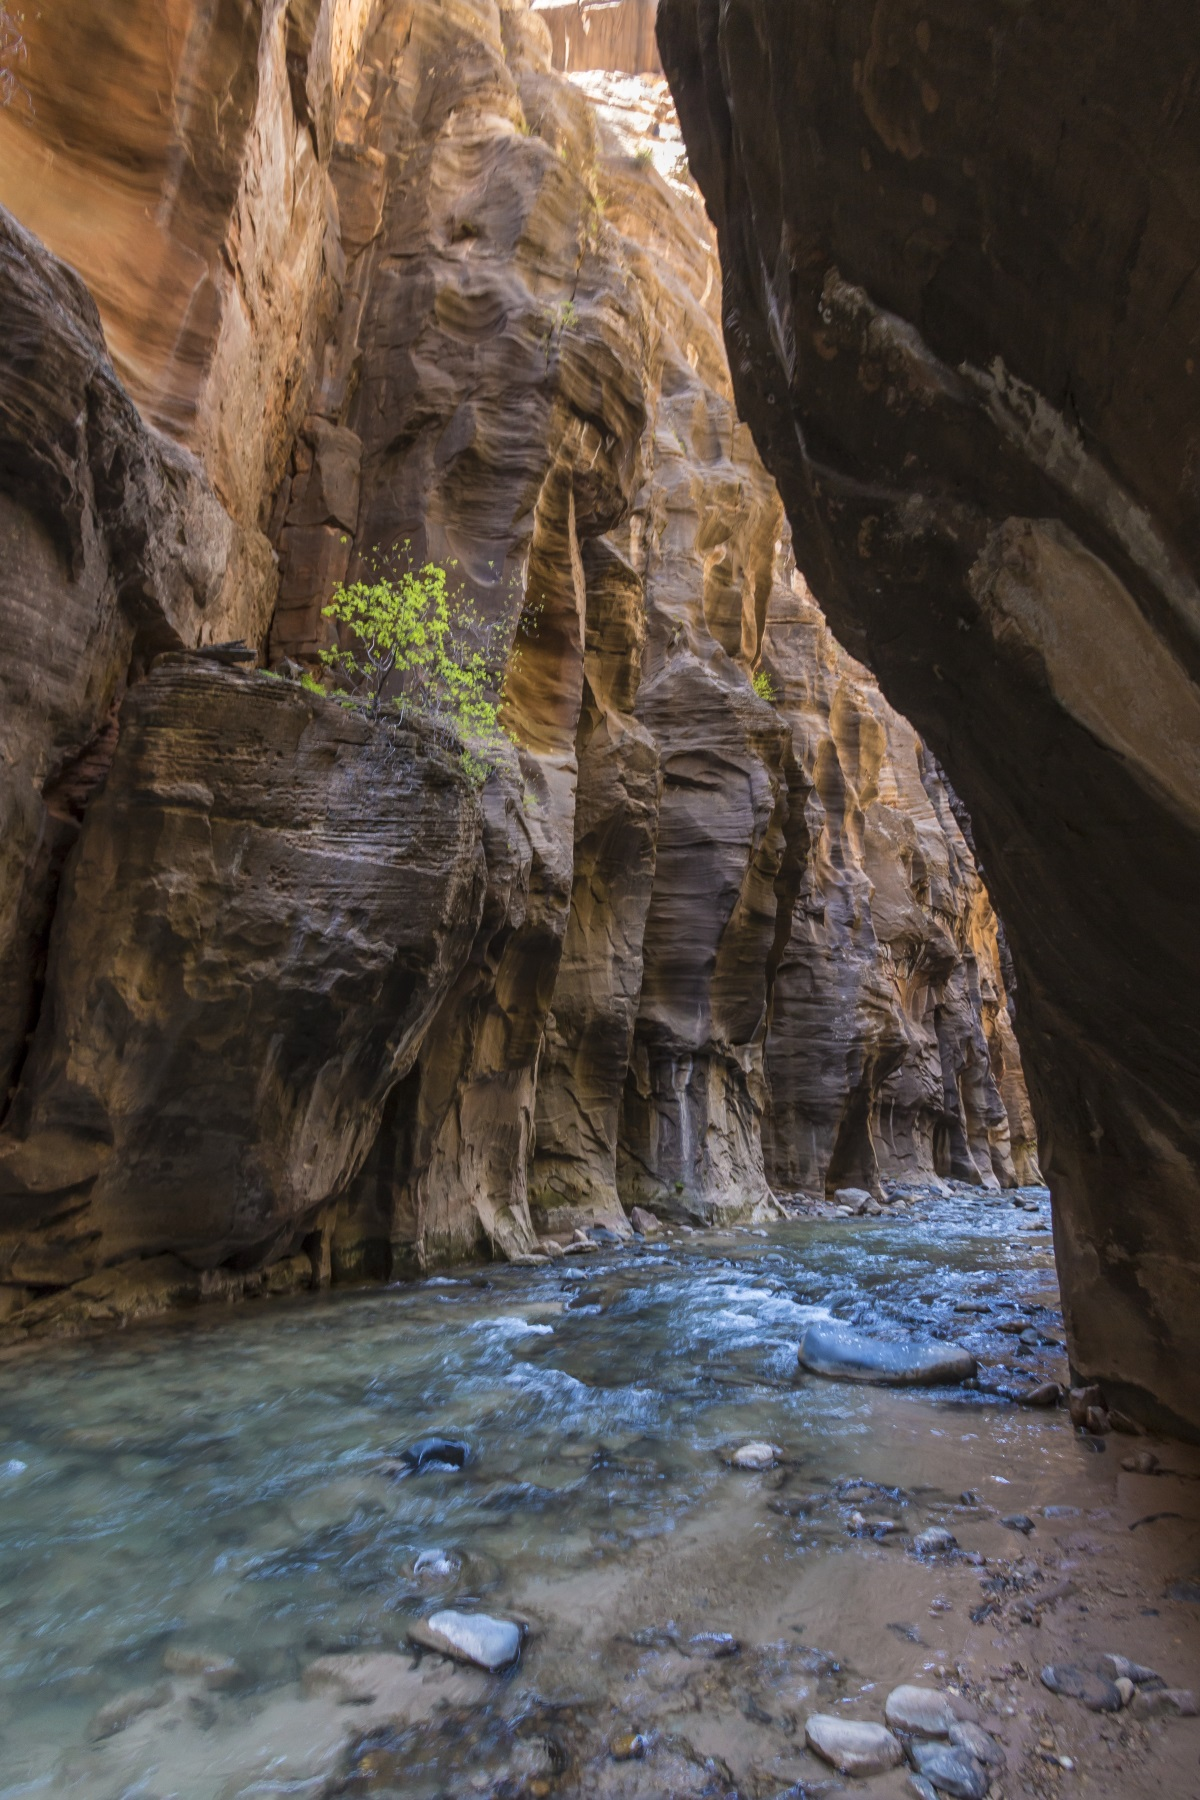 Wall street section of the Narrows